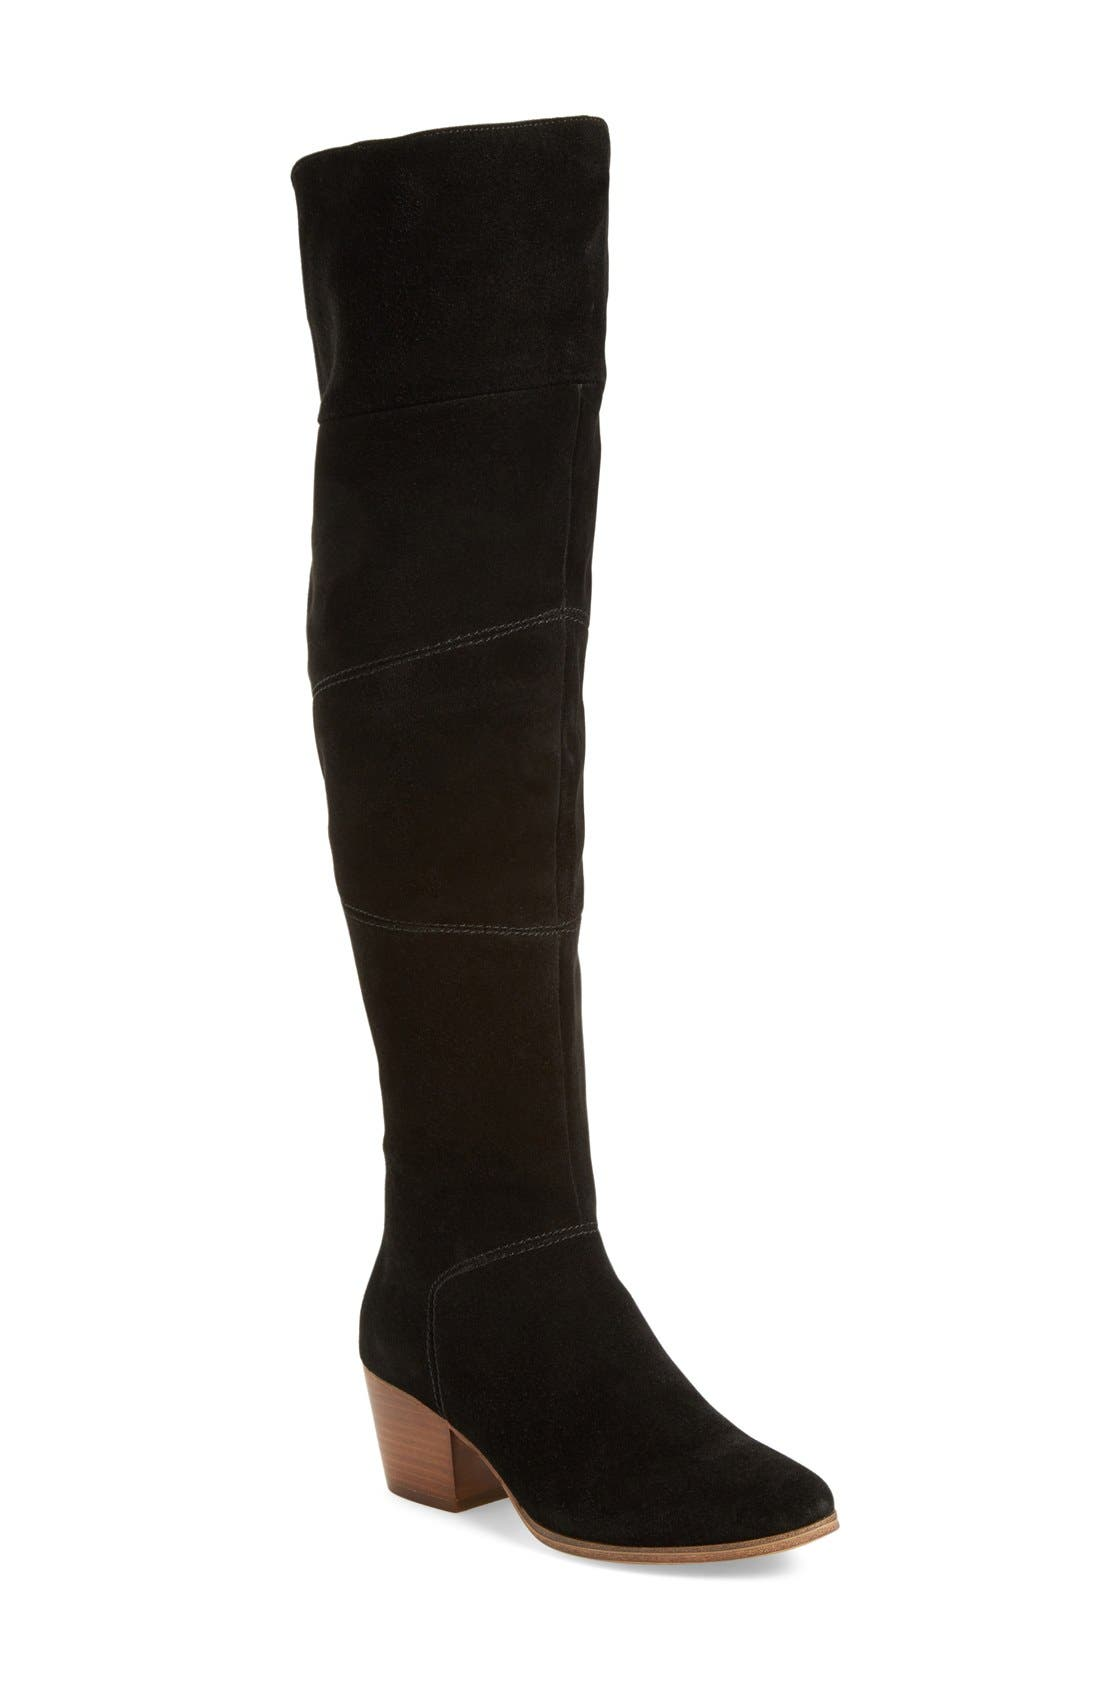 Melbourne Over the Knee Boot,                             Main thumbnail 1, color,                             BLACK SUEDE